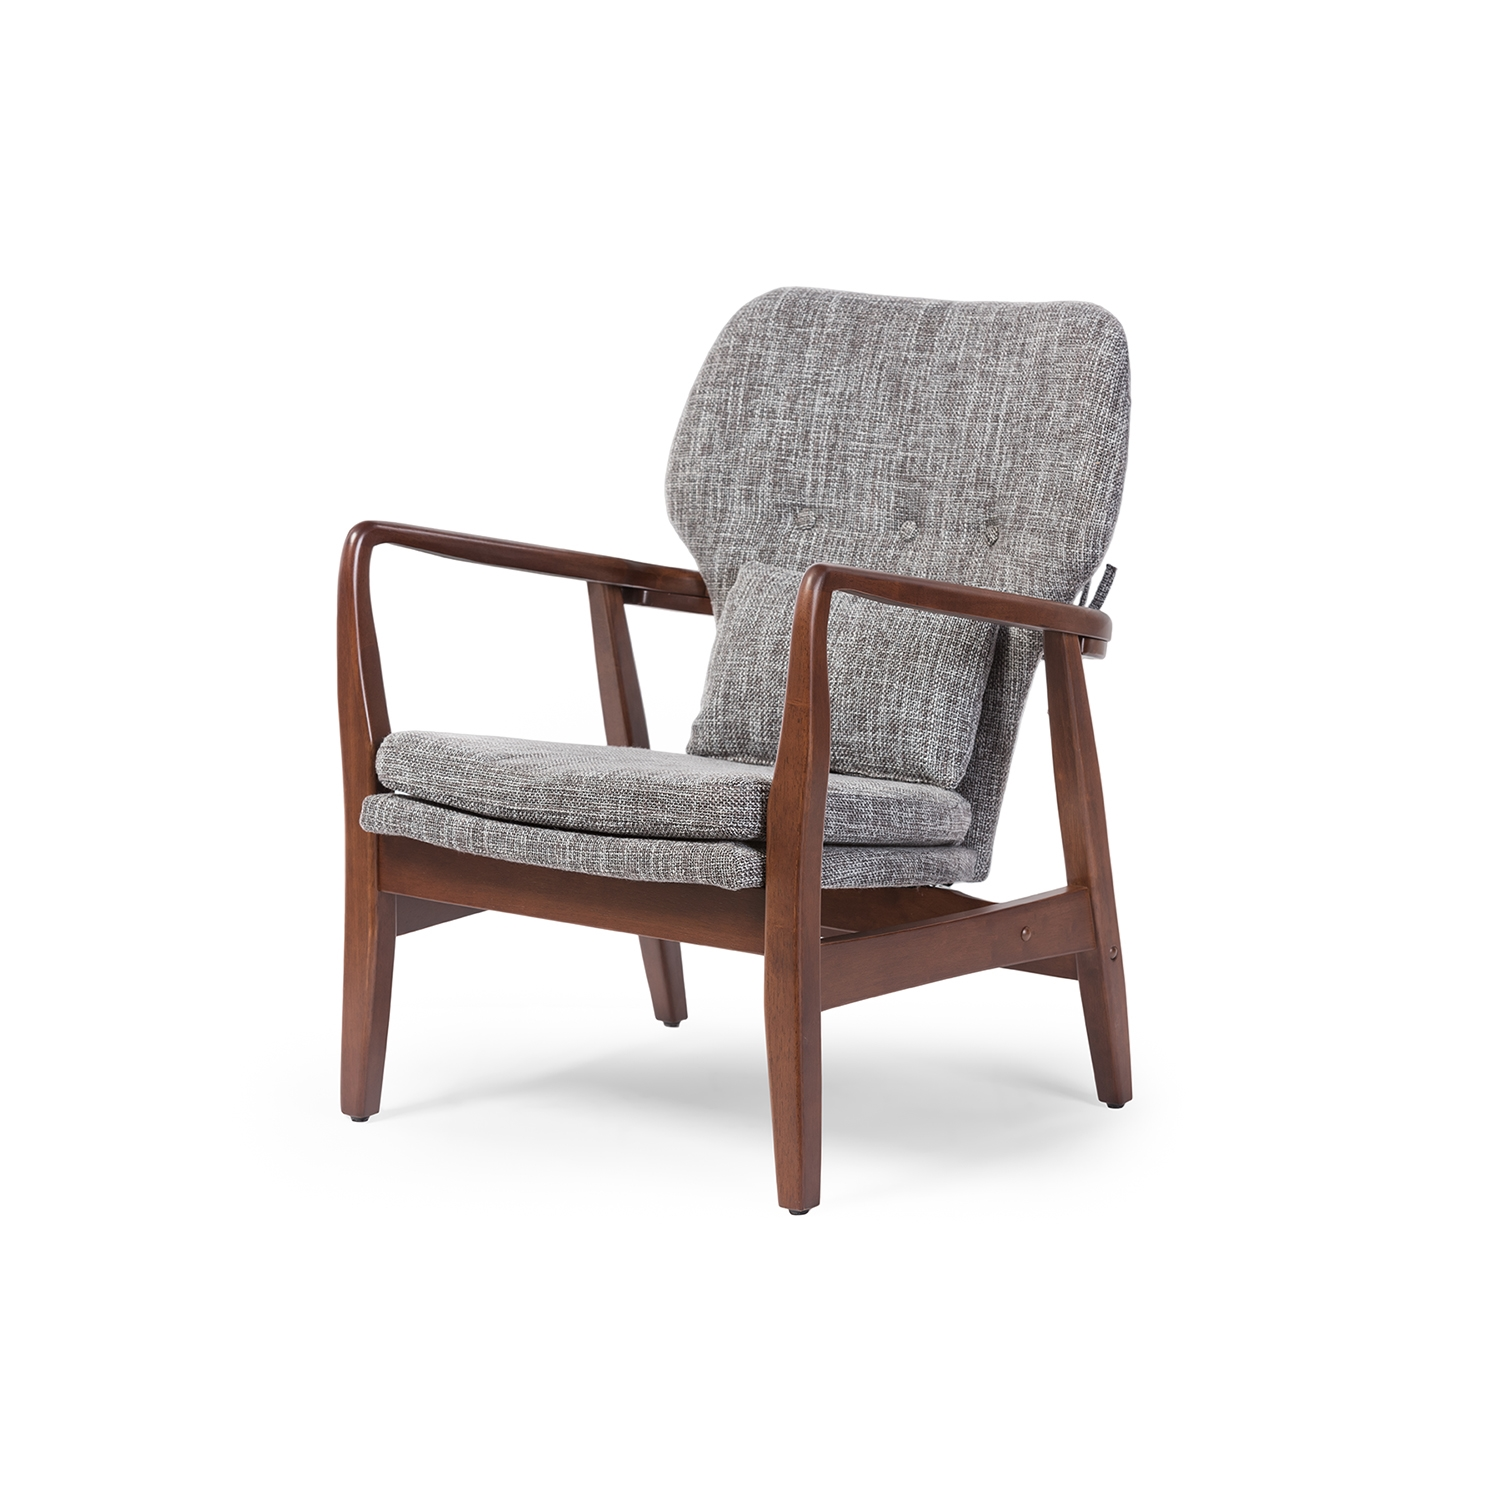 wood frame accent chairs. Baxton Studio Rundell Mid-Century Modern Retro Grey Fabric Upholstered Leisure Accent Chair In Walnut Wood Frame | Affordable Design Chairs A